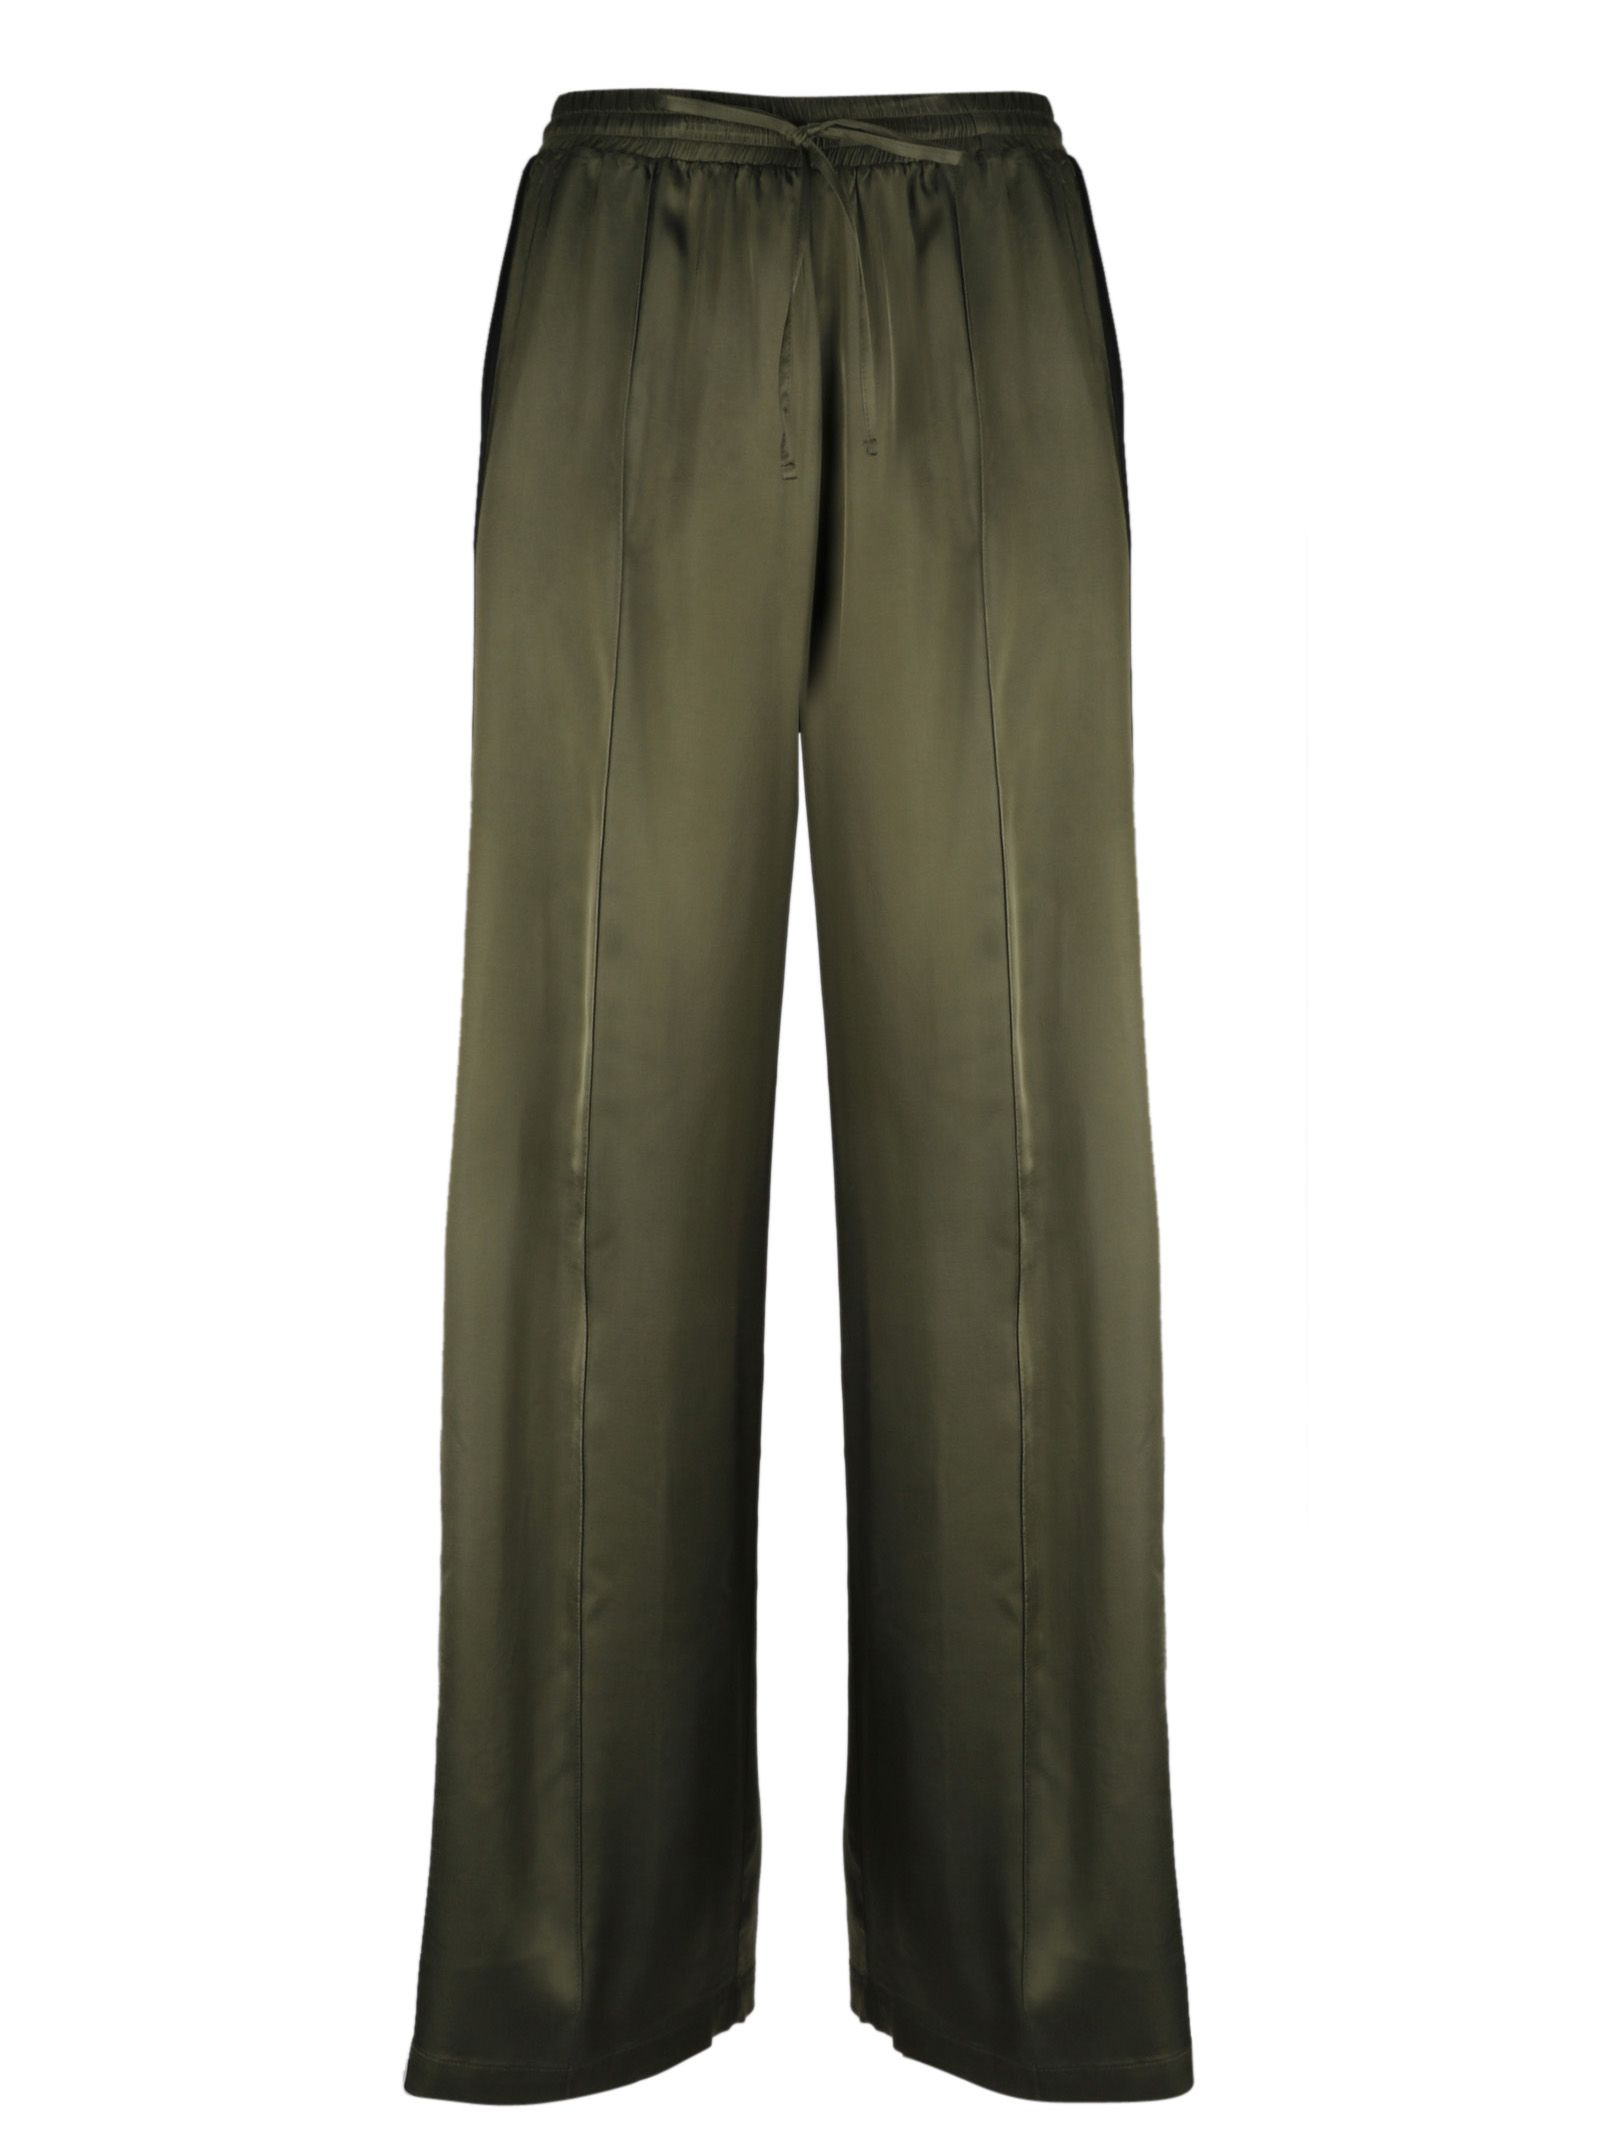 SEMICOUTURE SIDE STRIPE TROUSERS from Italist.com